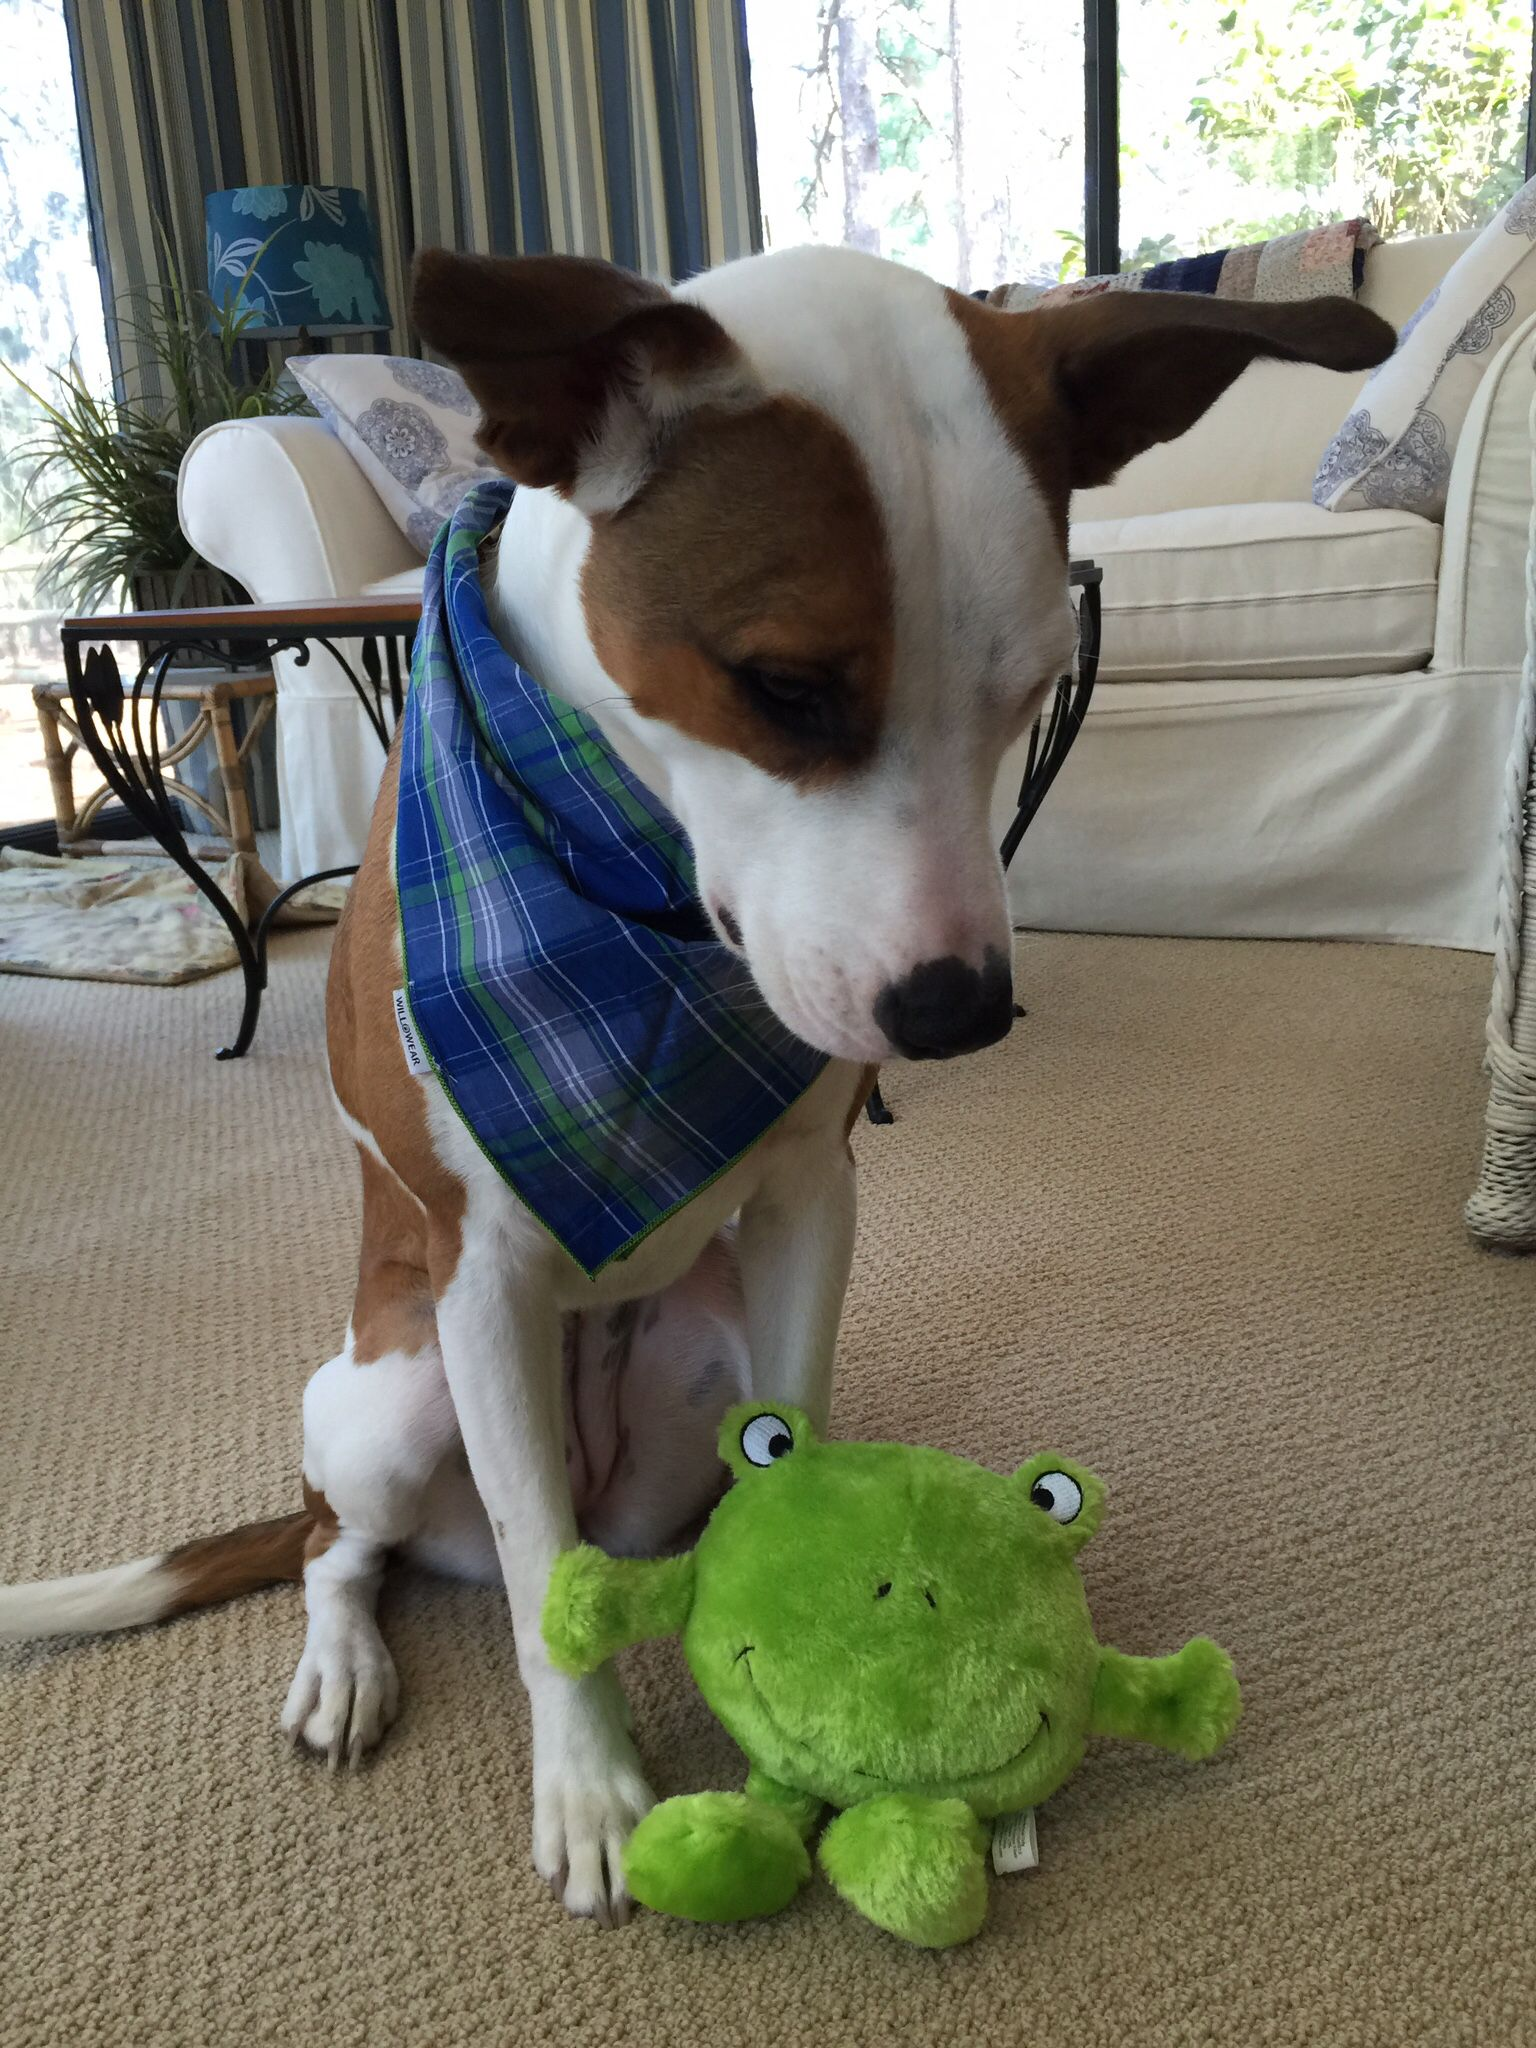 Roxi looks so stylish in her new bandanna. She also hasn't stopped playing with her new favorite toy the frog. #Pawpalswithannie #willowearpetbandans #zippypaws